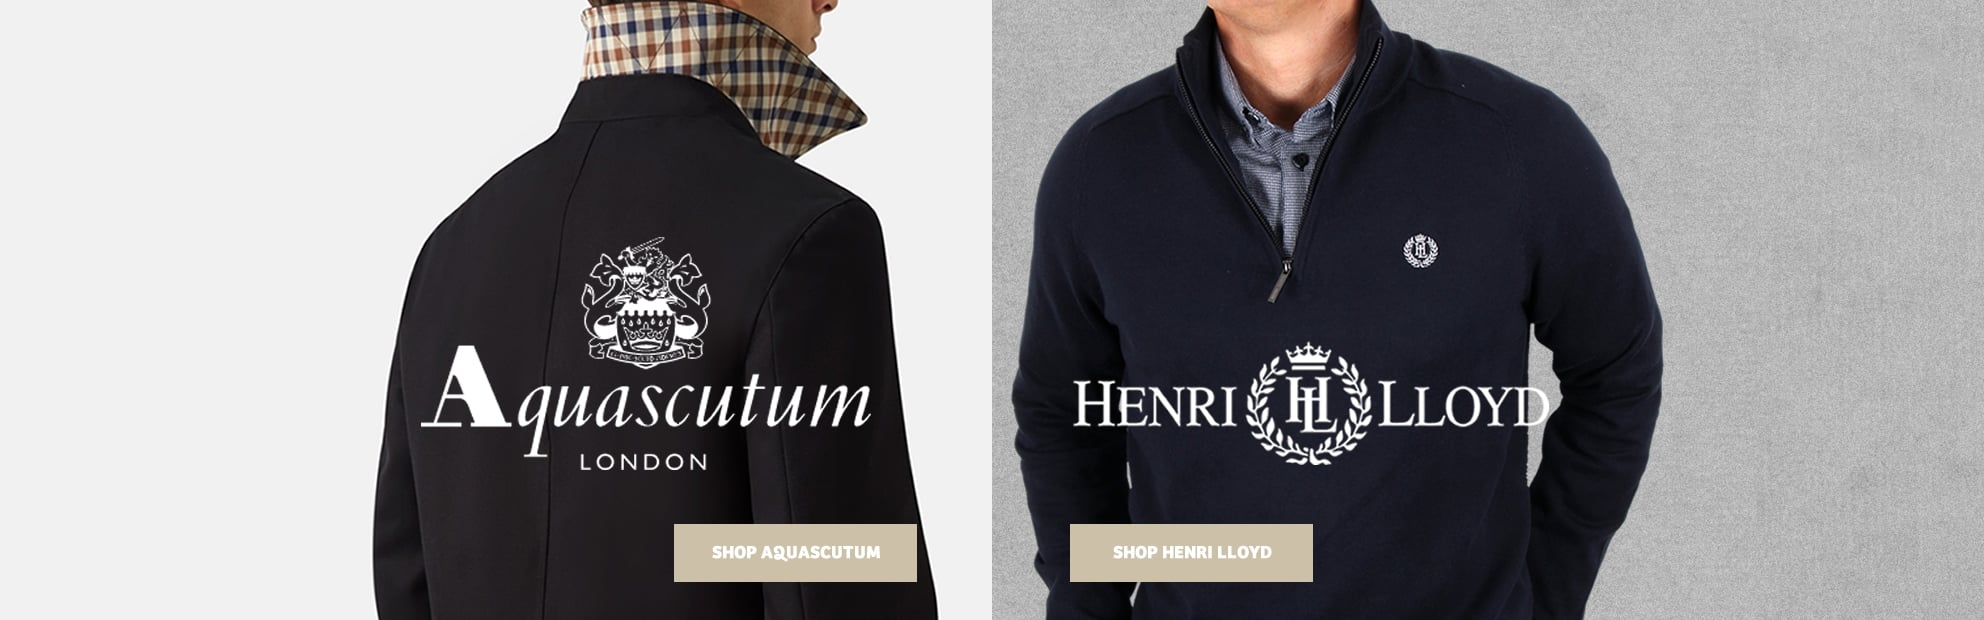 Aquascutum and Henri Lloyd